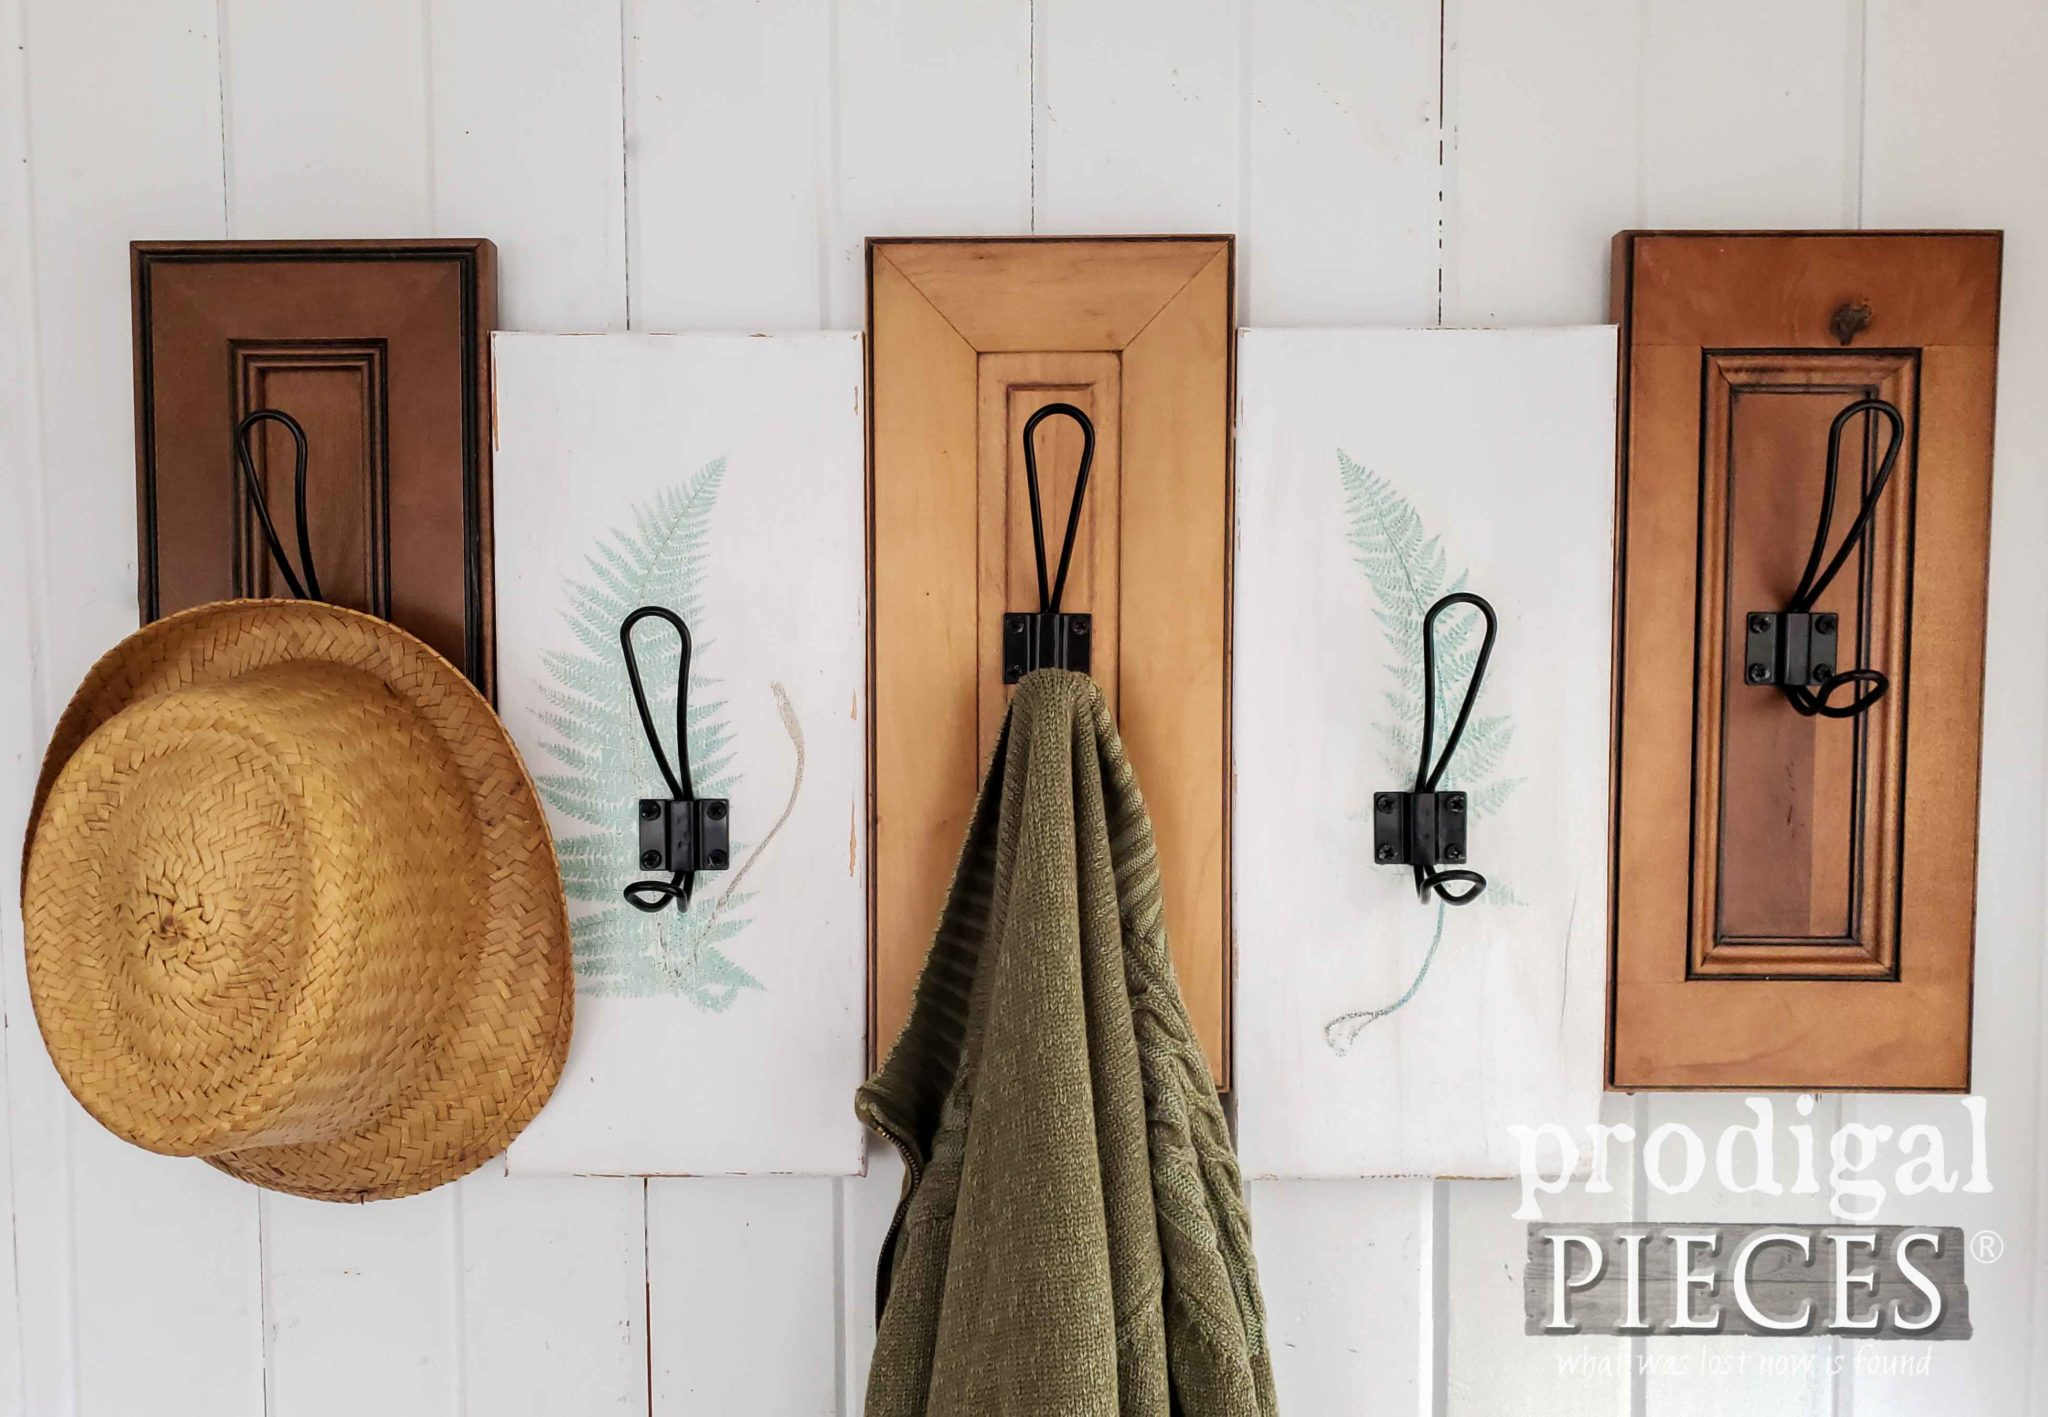 Reclaimed Coat Rack made out of Upcycled Drawer Fronts by Larissa of Prodigal Pieces | prodigalpieces.com #prodigalpieces #diy #handmade #home #farmhouse #homedecor #homedecorideas